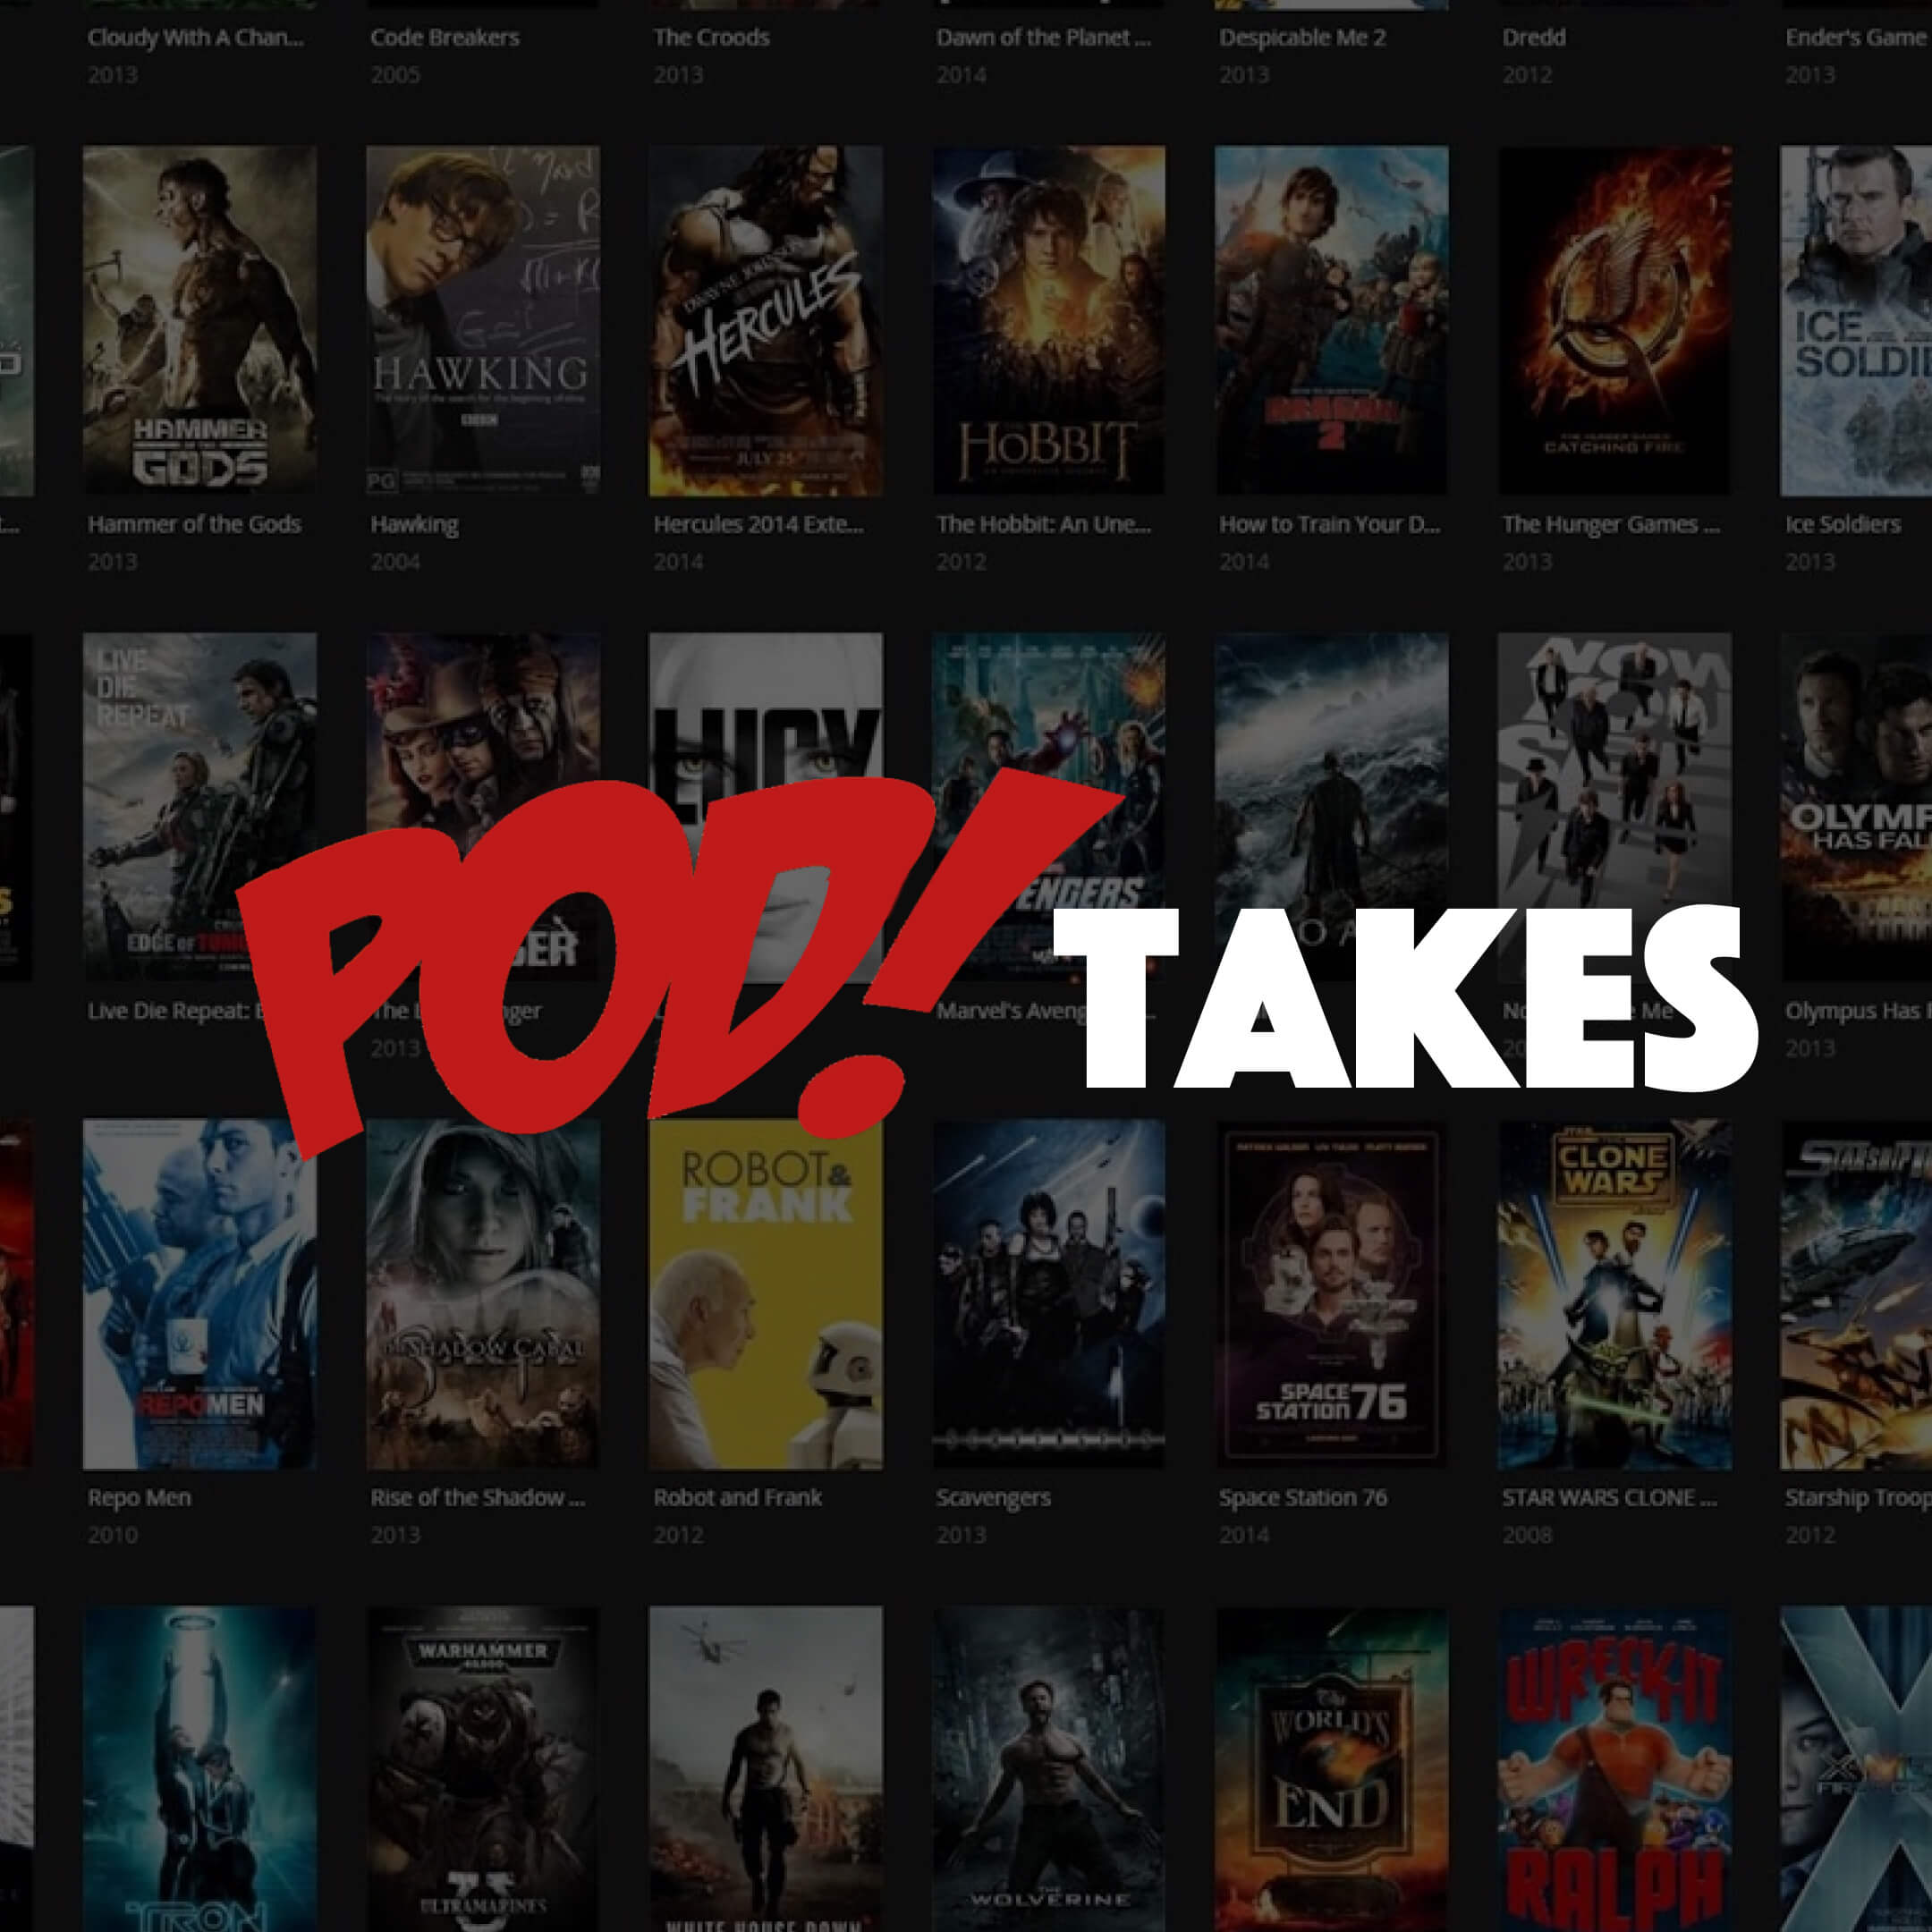 PodTakes cover with podtakes logo and gallery of movies in the background